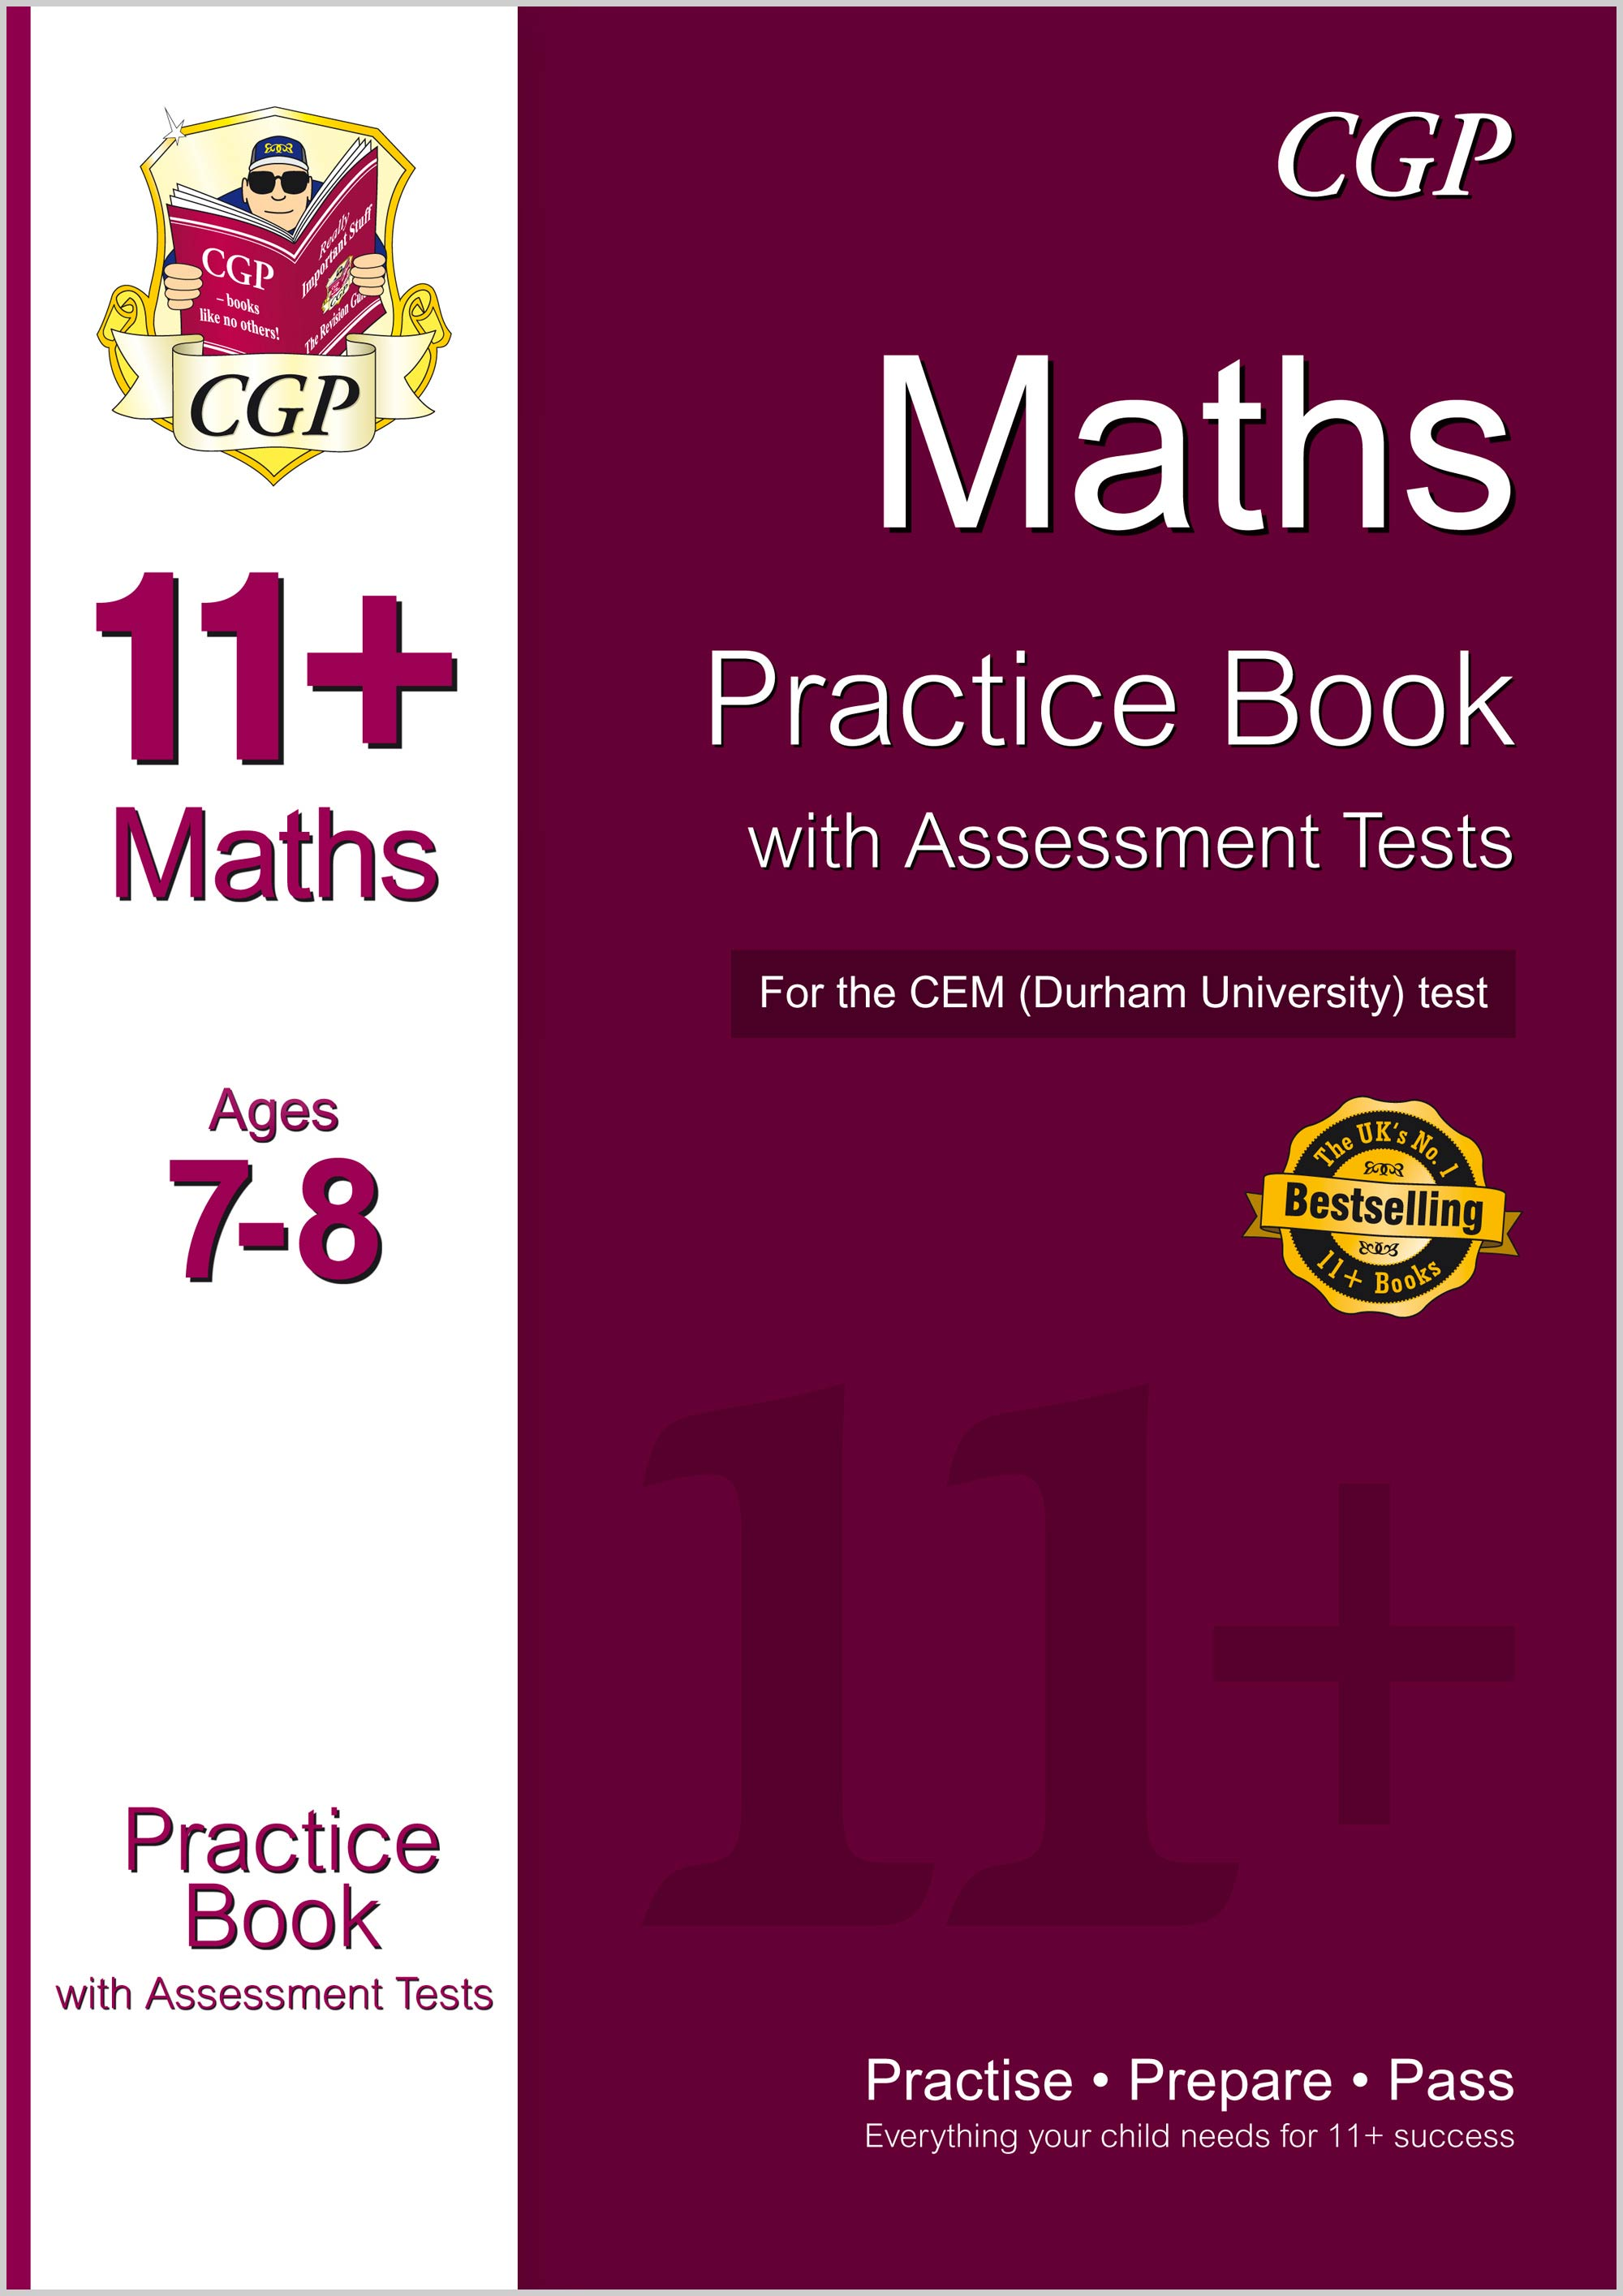 M3QDE1 - 11+ Maths Practice Book with Assessment Tests (Ages 7-8) for the CEM Test